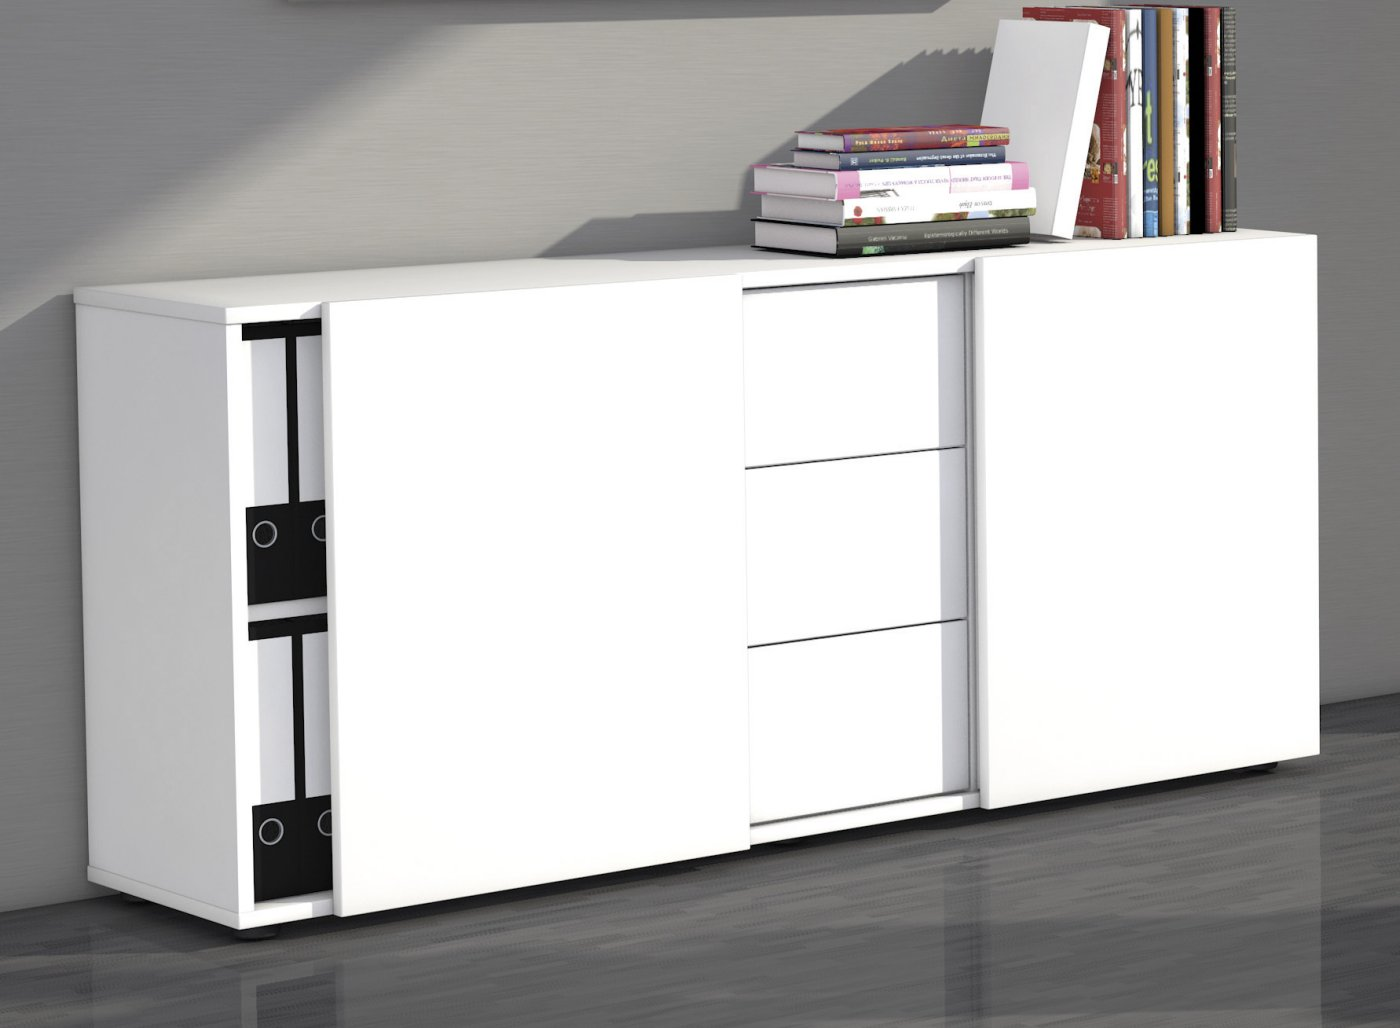 wei es b ro sideboard mit 2 schiebet ren und 3 schubladen. Black Bedroom Furniture Sets. Home Design Ideas